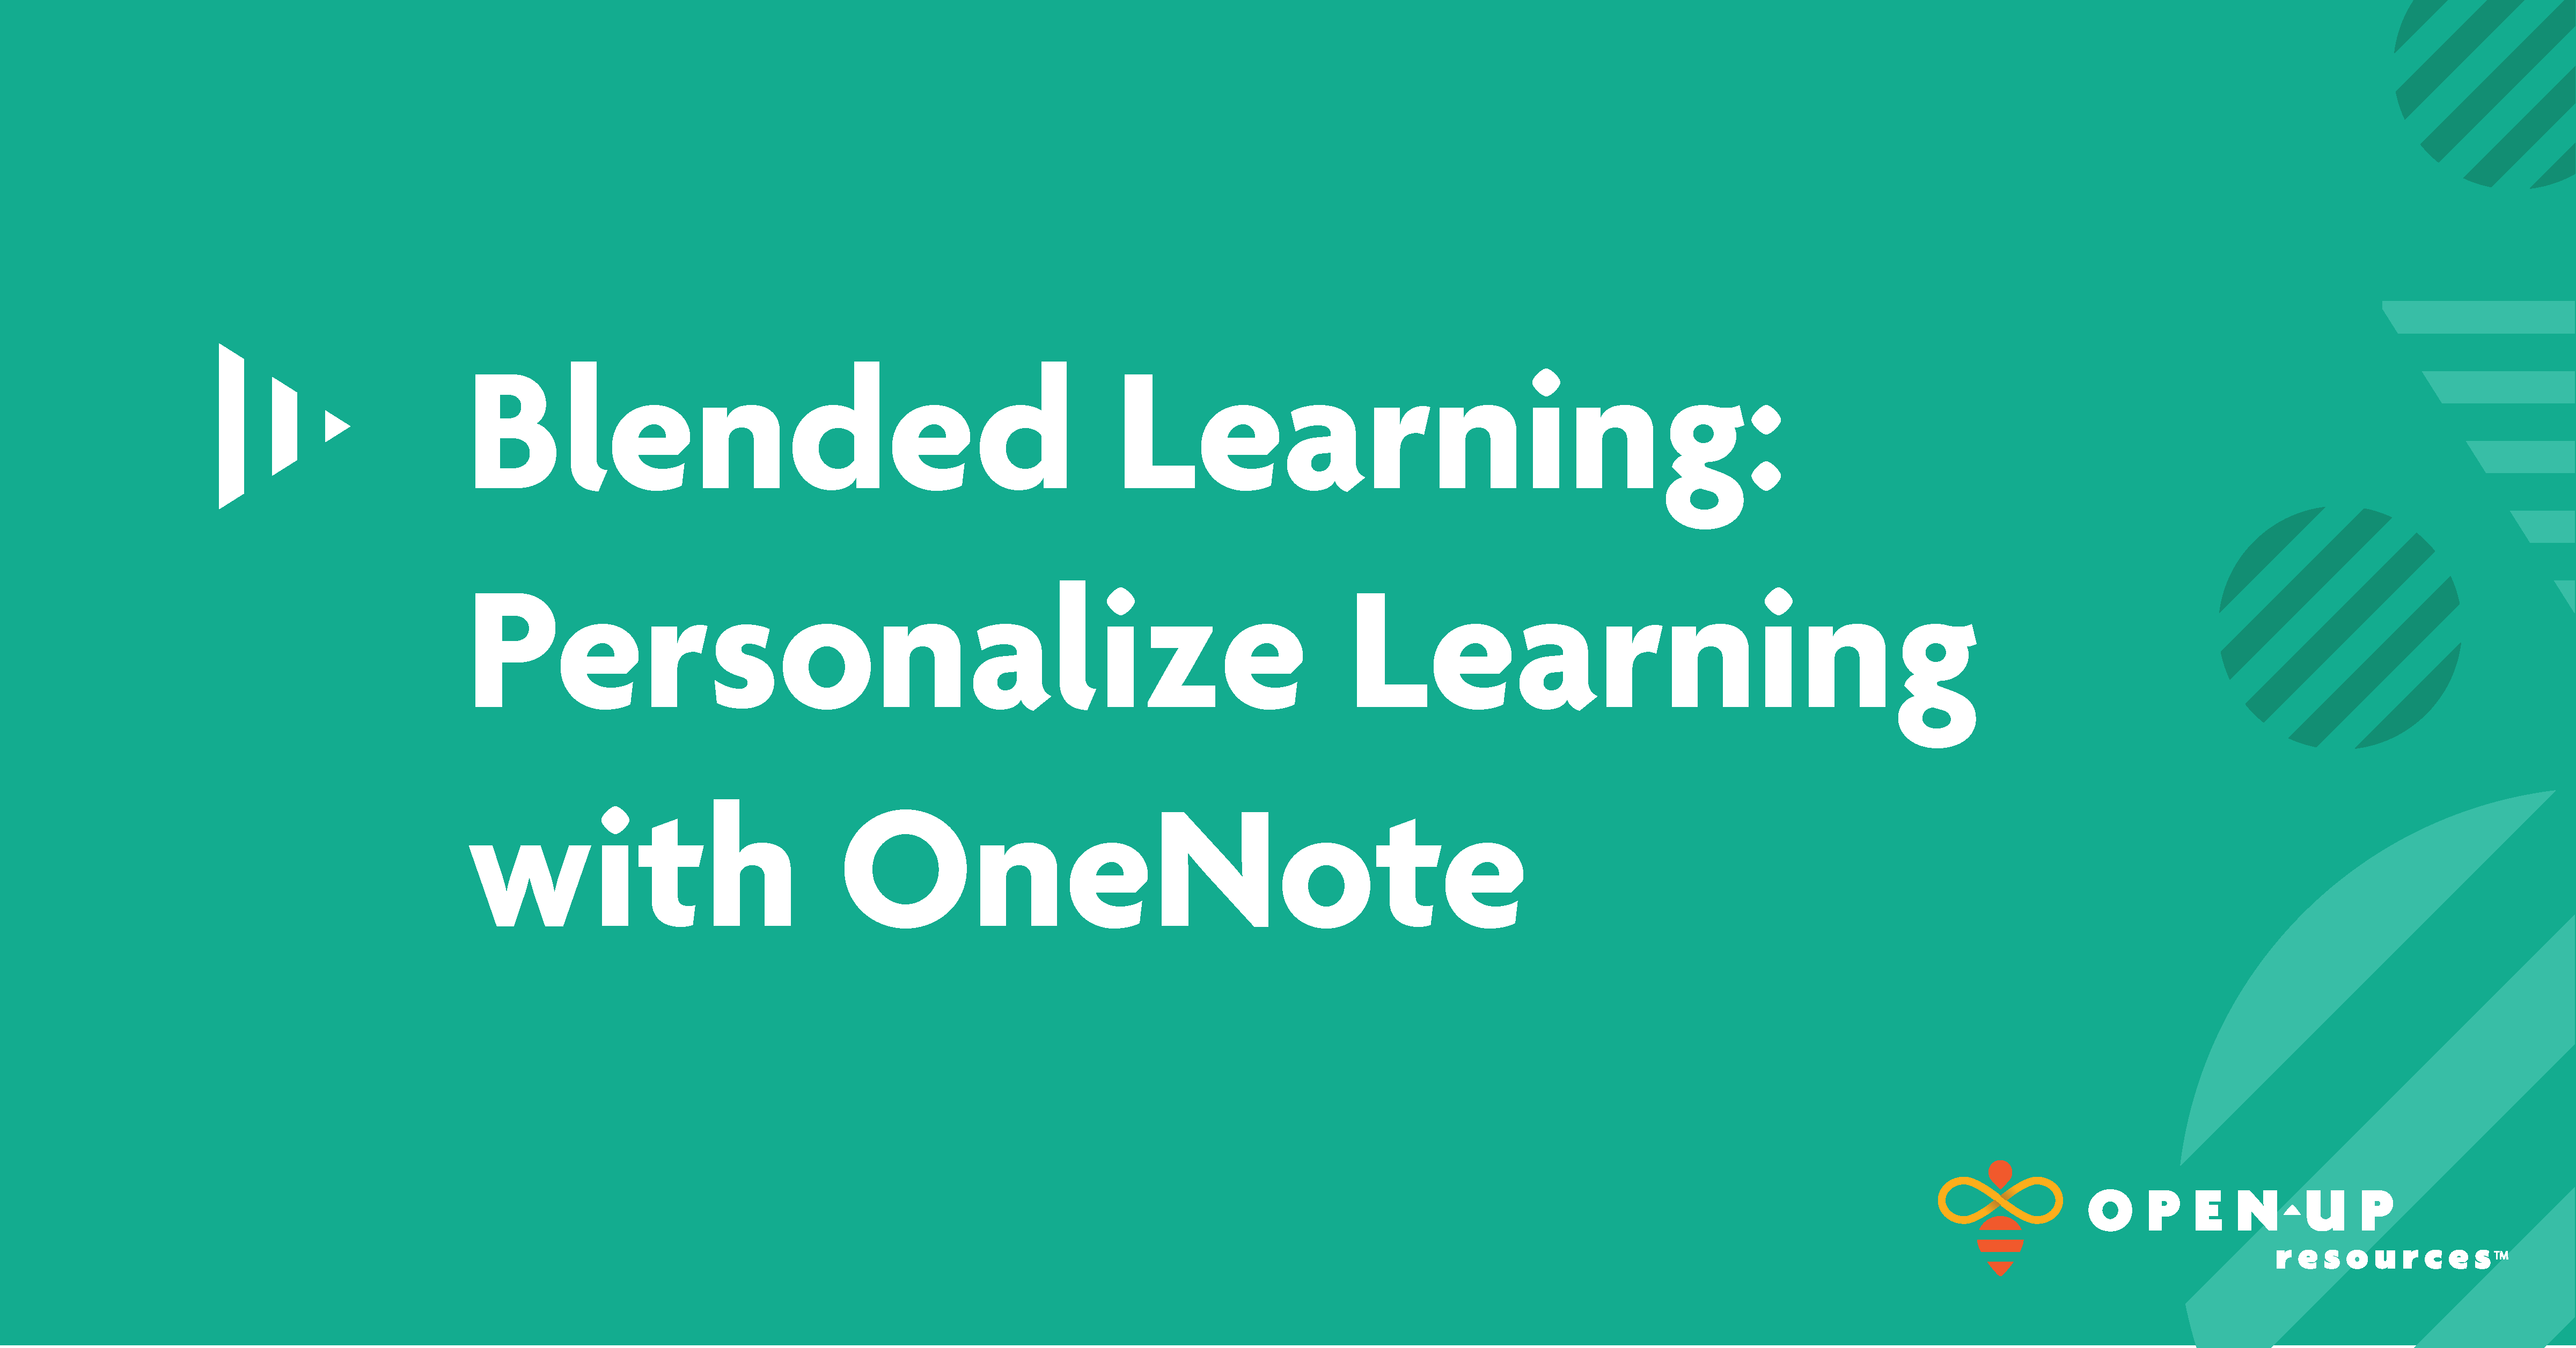 Blended Learning, Personalize Learning with OneNote, Teal